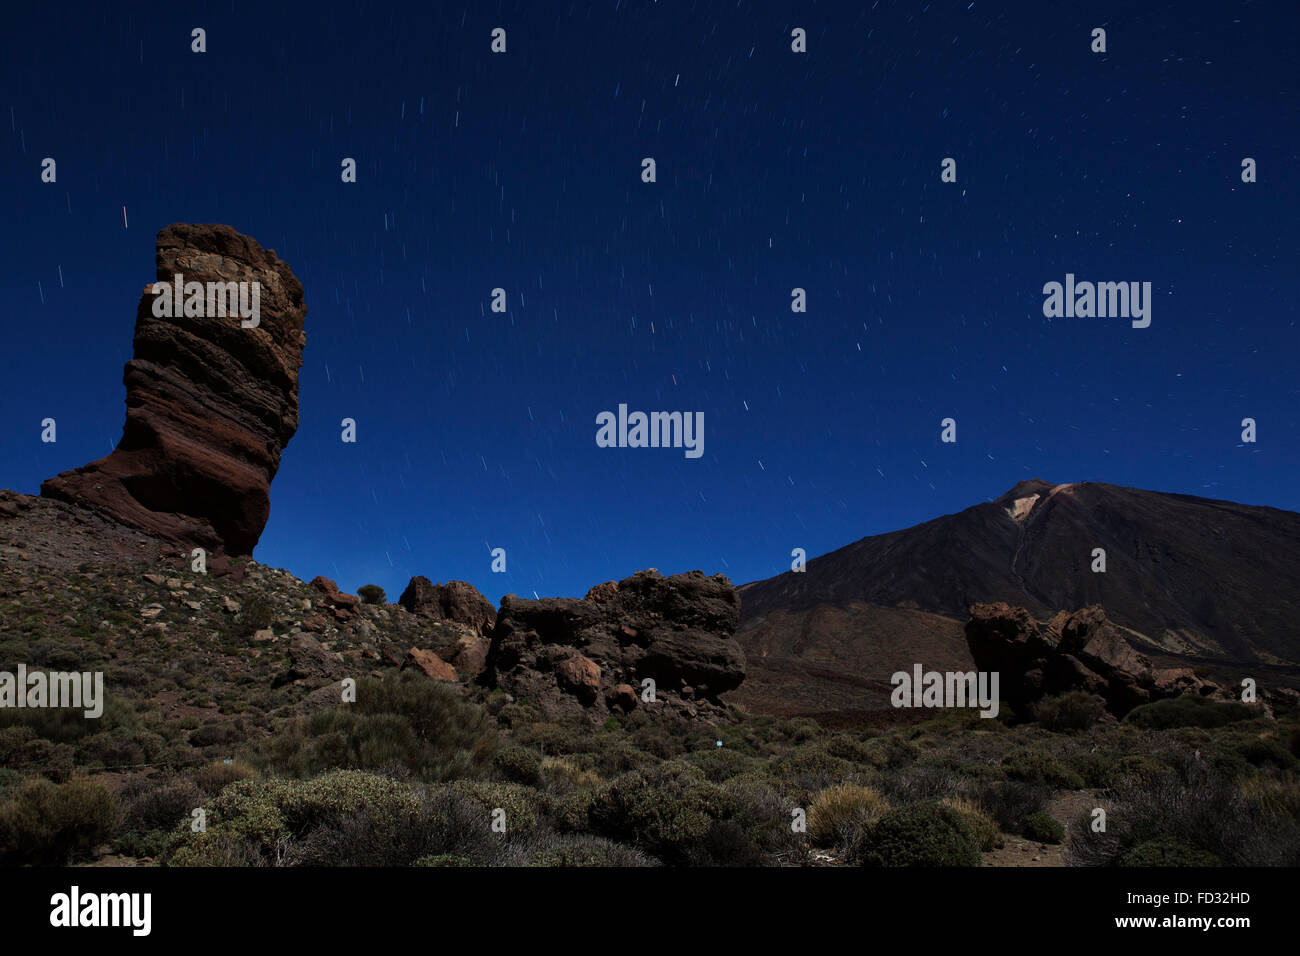 Stars trail in the night sky above Los Roques de Garcia and Mount Teide in Teide National Park on Tenerife, Spain. - Stock Image